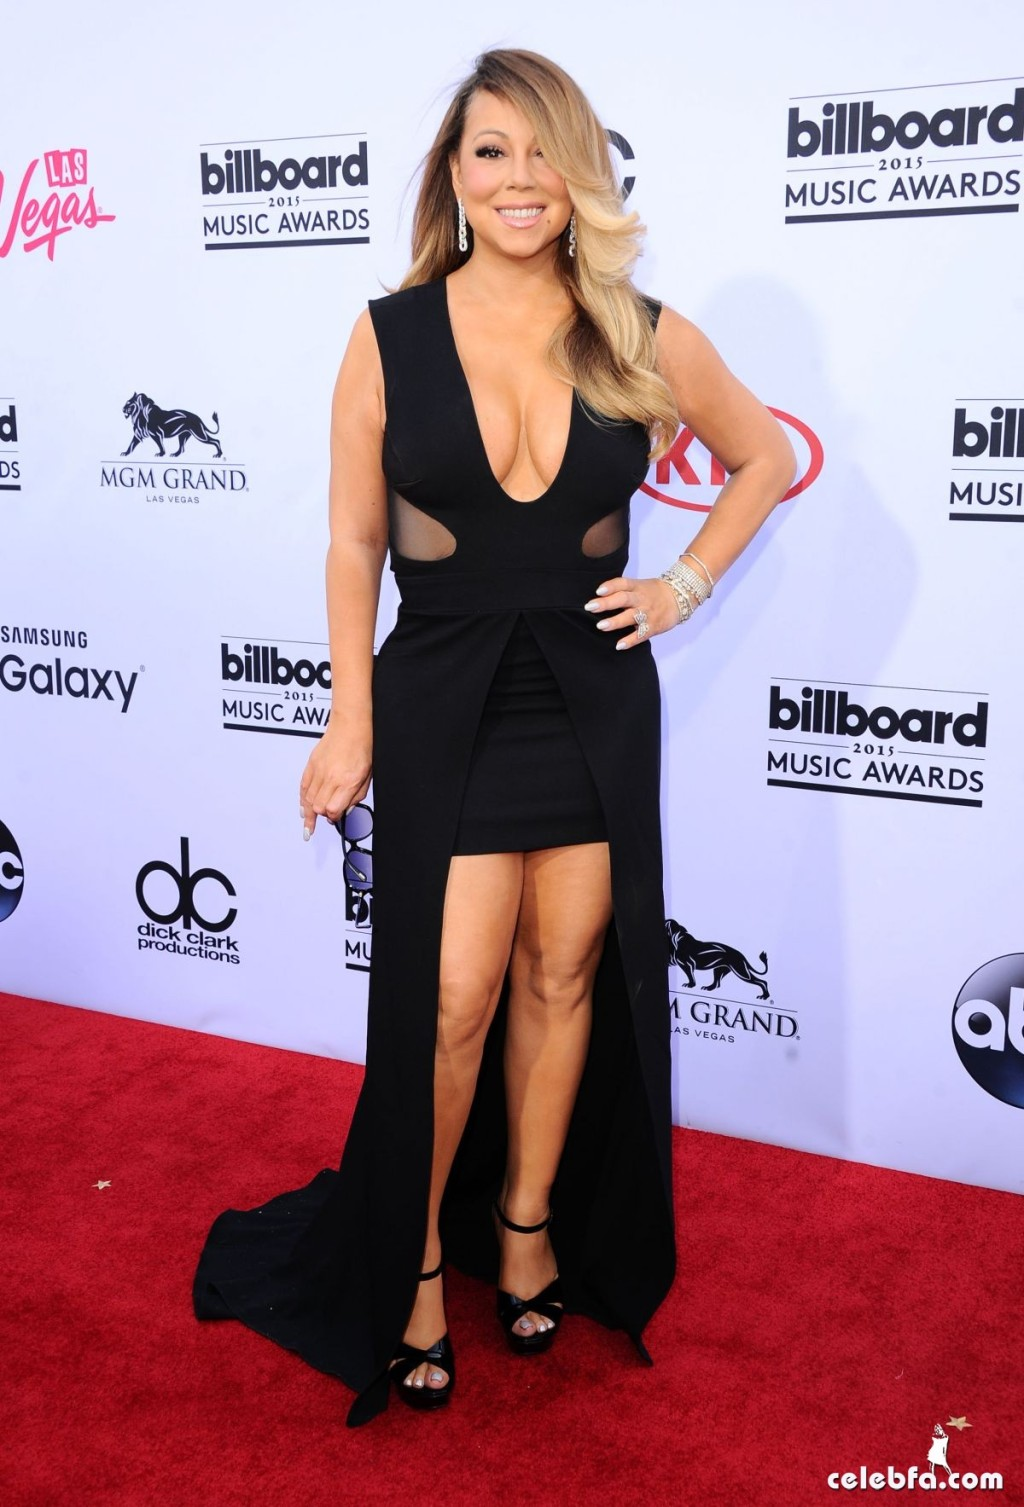 mariah-carey-2015-billboard-music-awards (8)